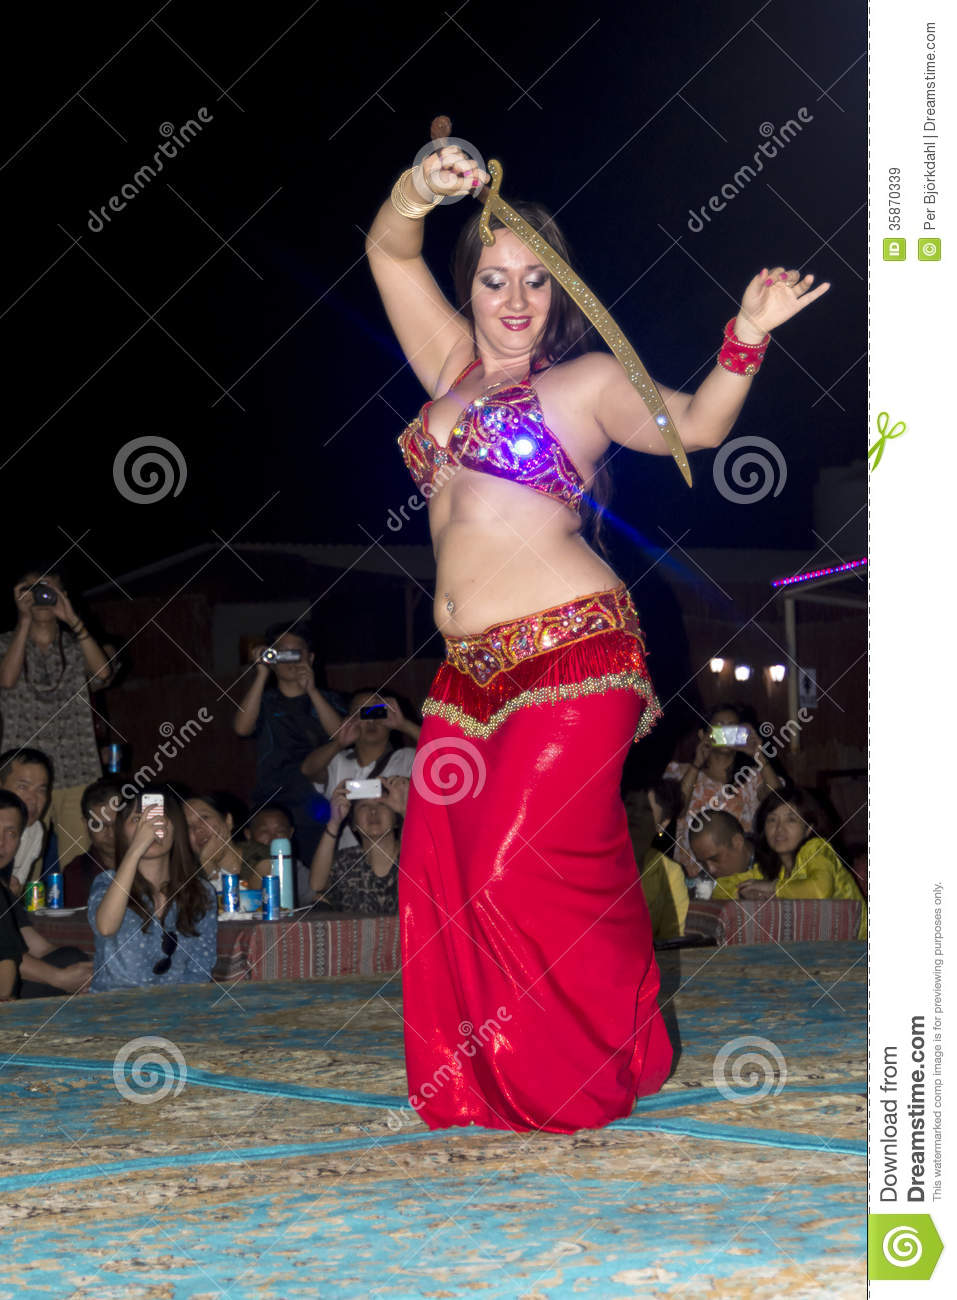 belly dancer with sword editorial stock image. image of female